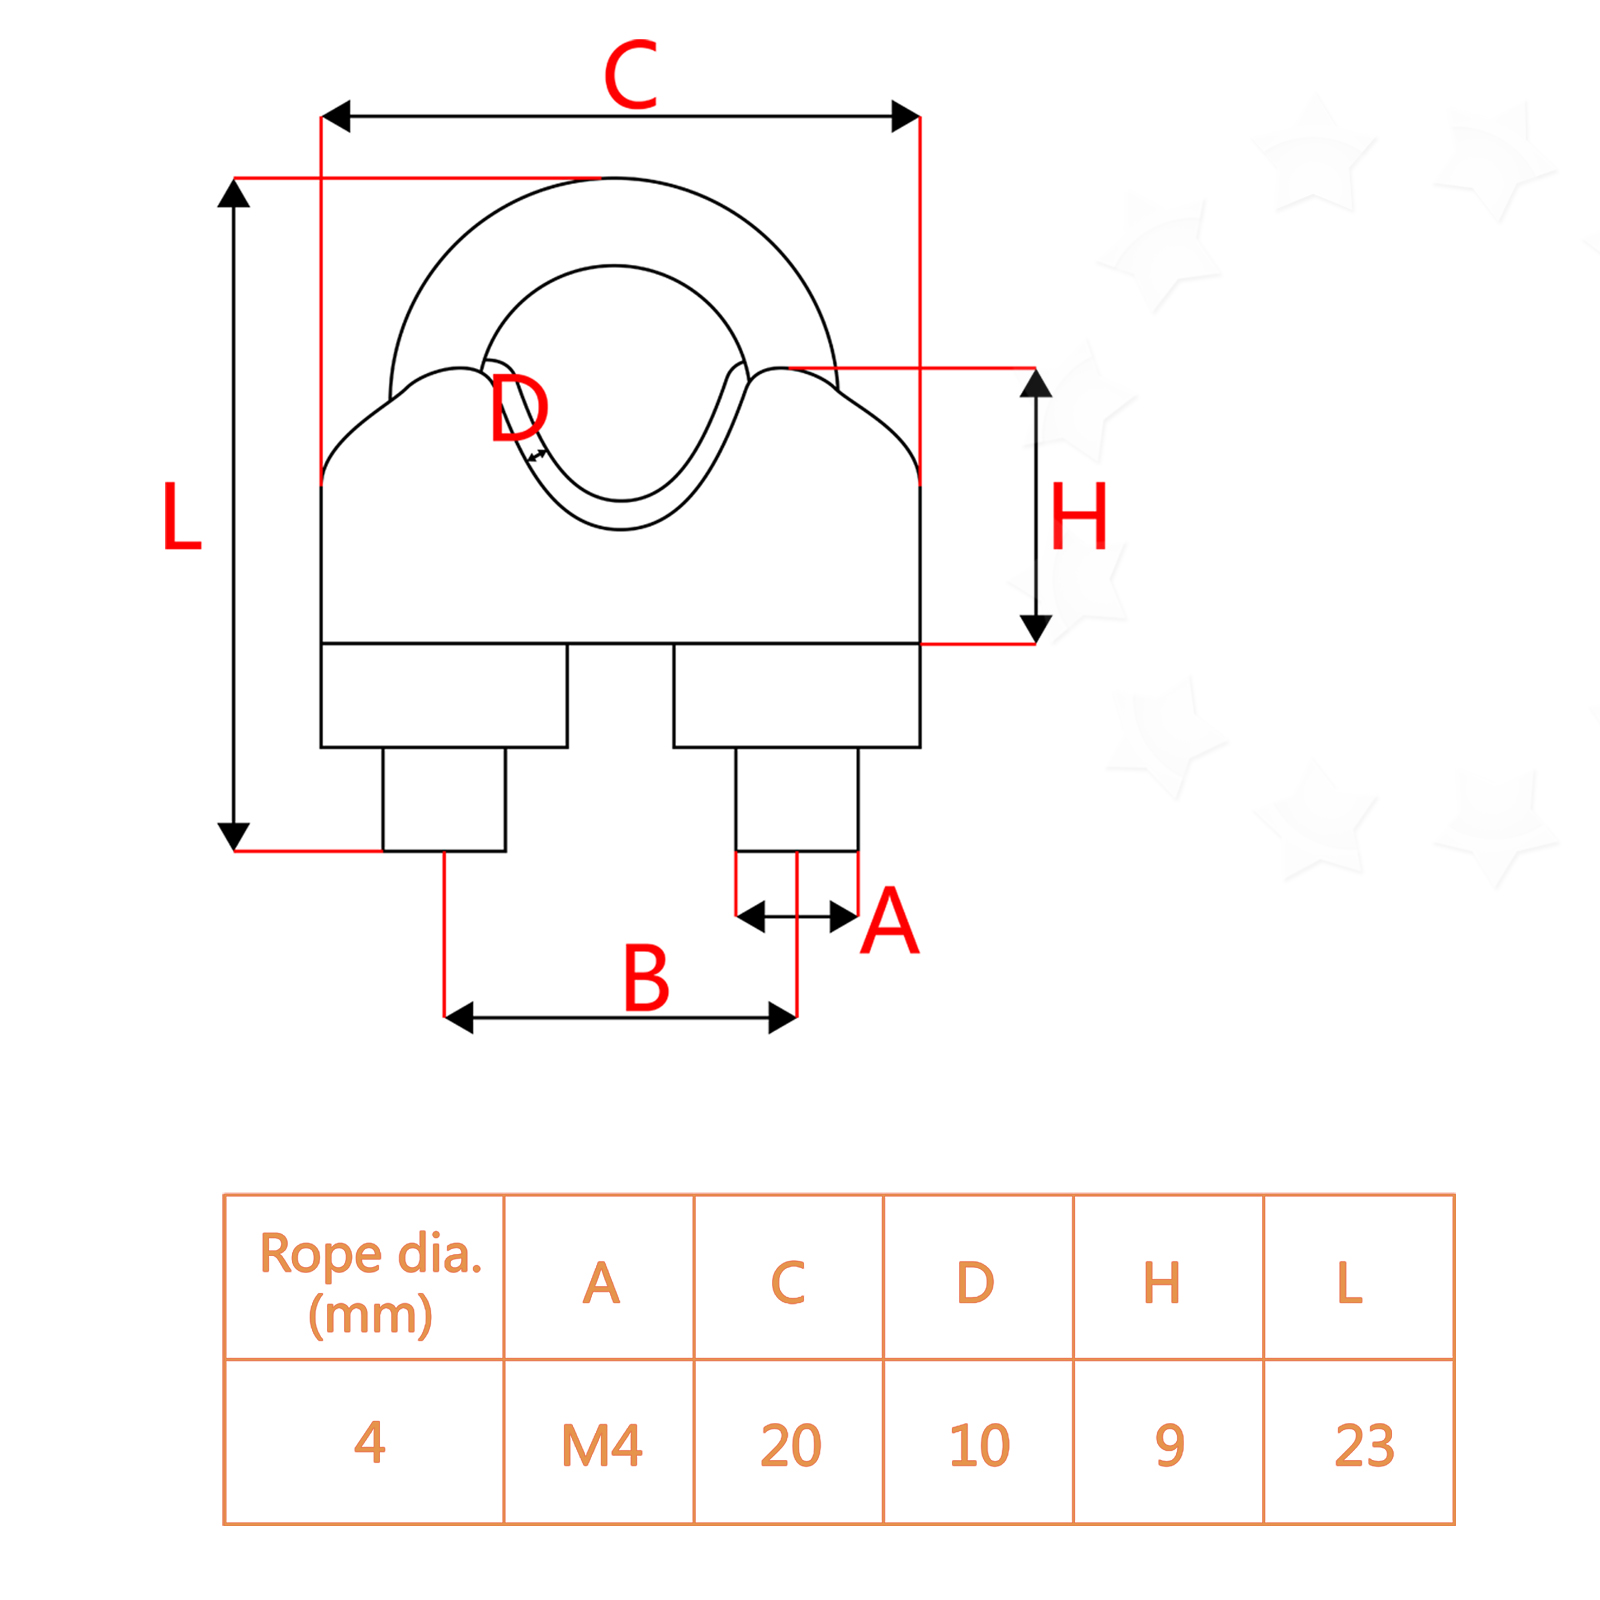 Dorable 5 wire rope light sketch electrical diagram ideas fancy 5 wire rope light sketch electrical diagram ideas piotomar aloadofball Image collections